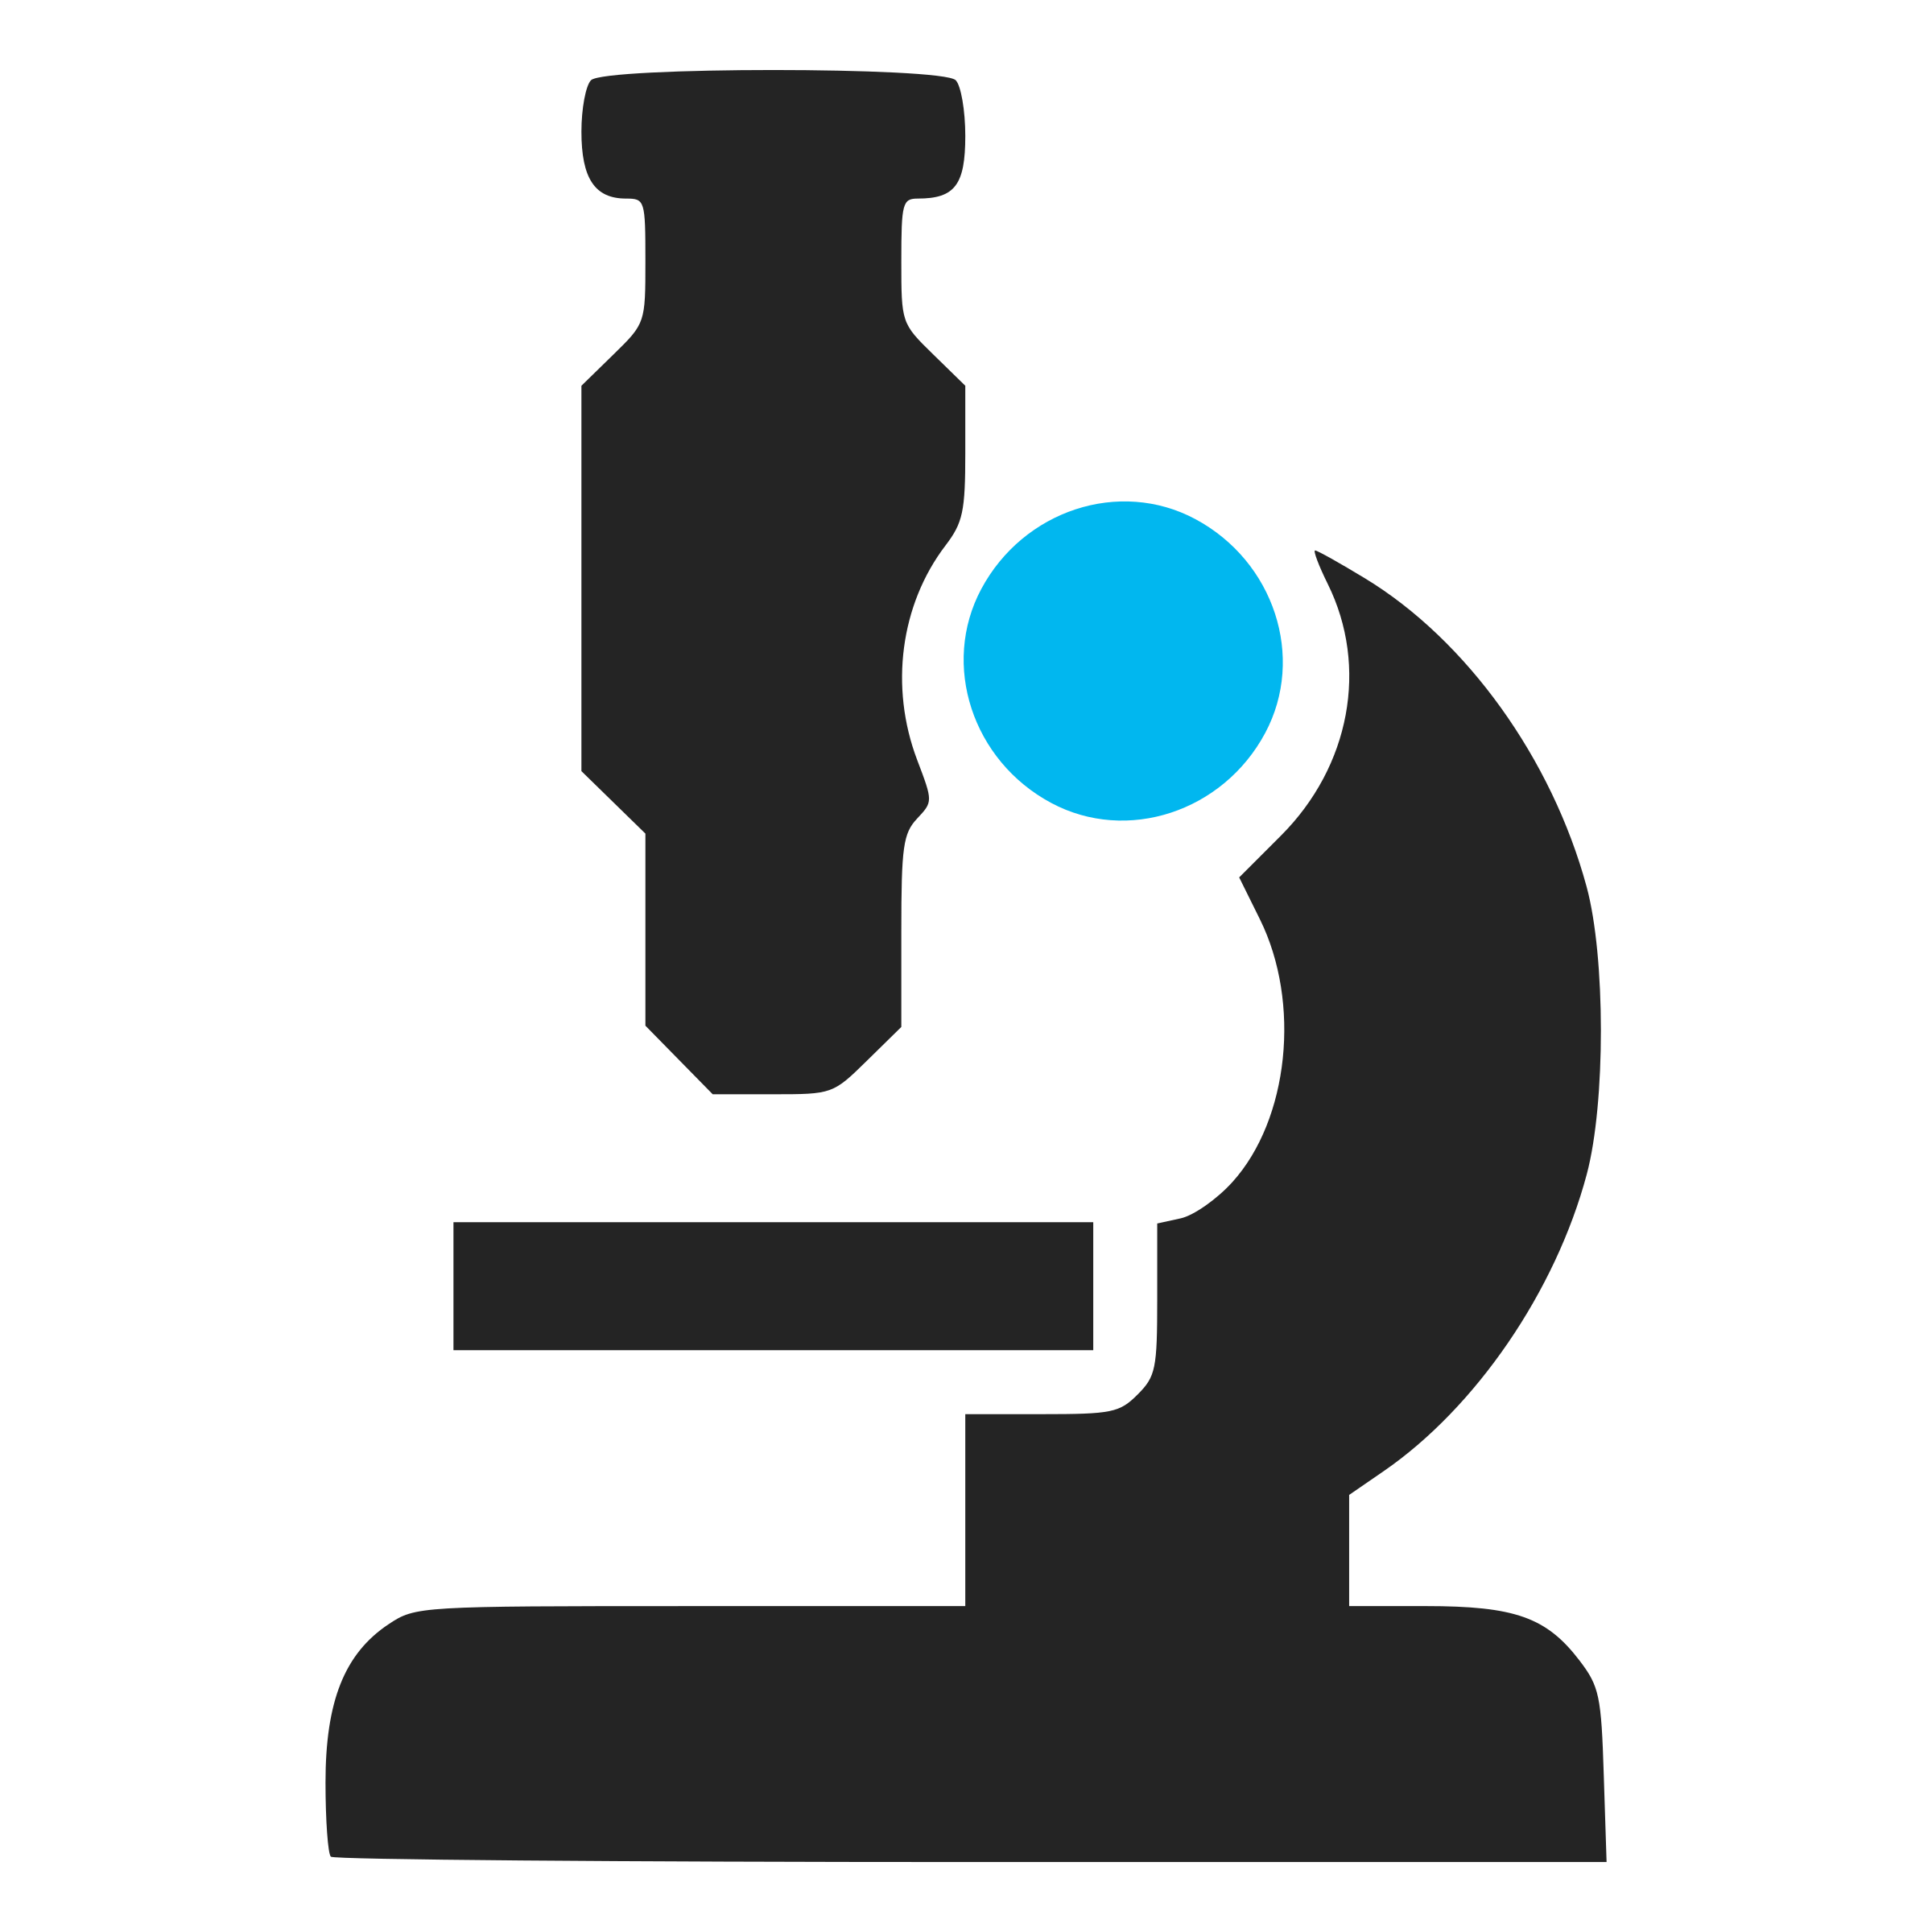 Microscope Clipart Free Clip Art Images